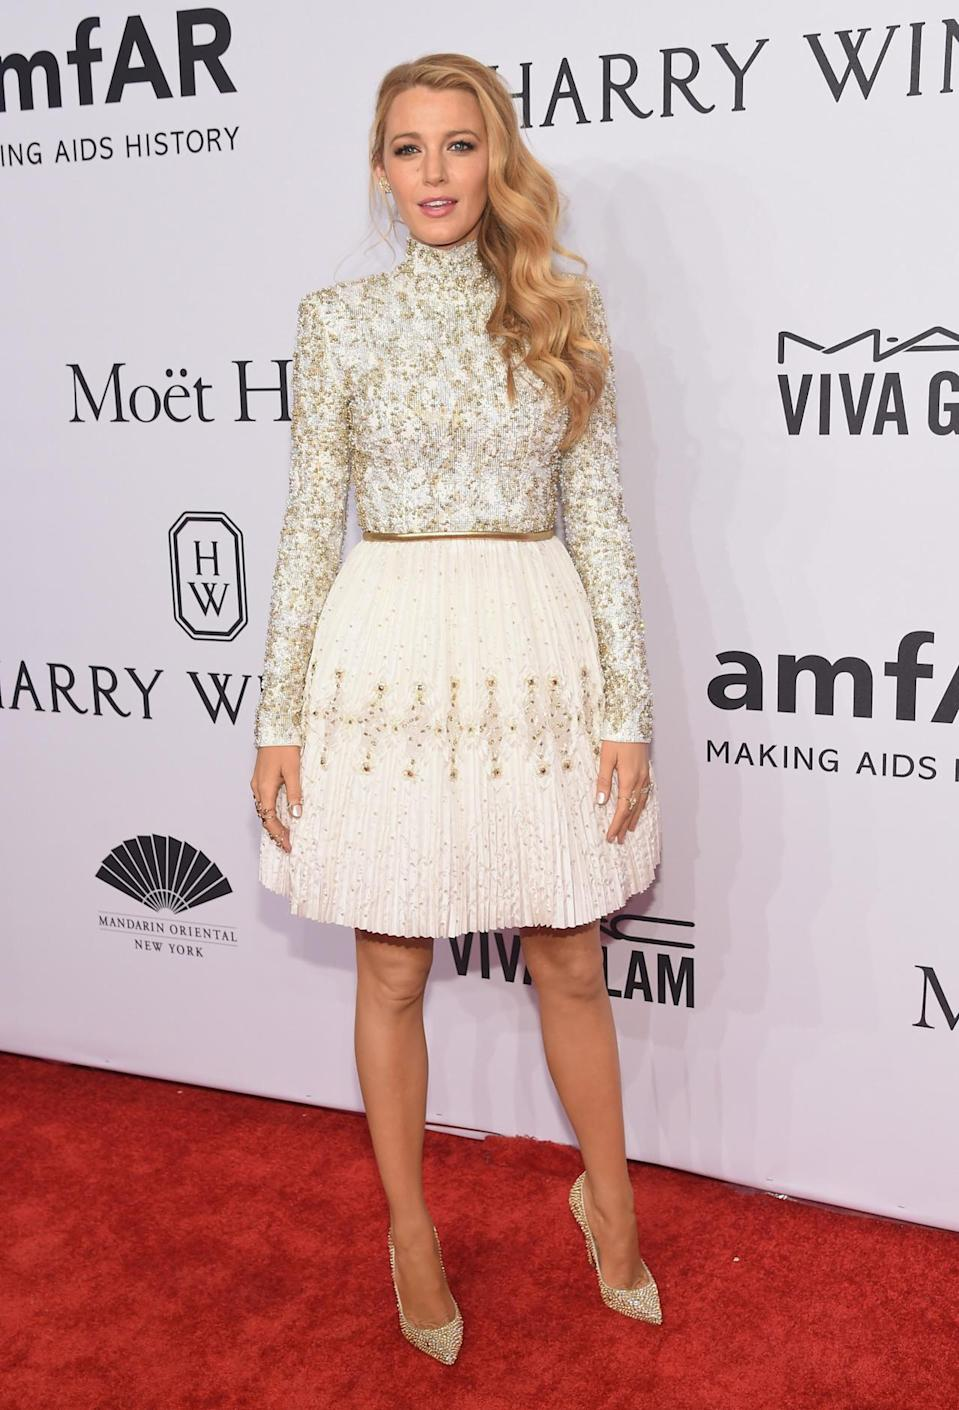 <p>Dripping in Chanel haute couture, Blake Lively flaunted her sartorial prowess at the star-studded event.<i> [Photo: Getty]</i></p>